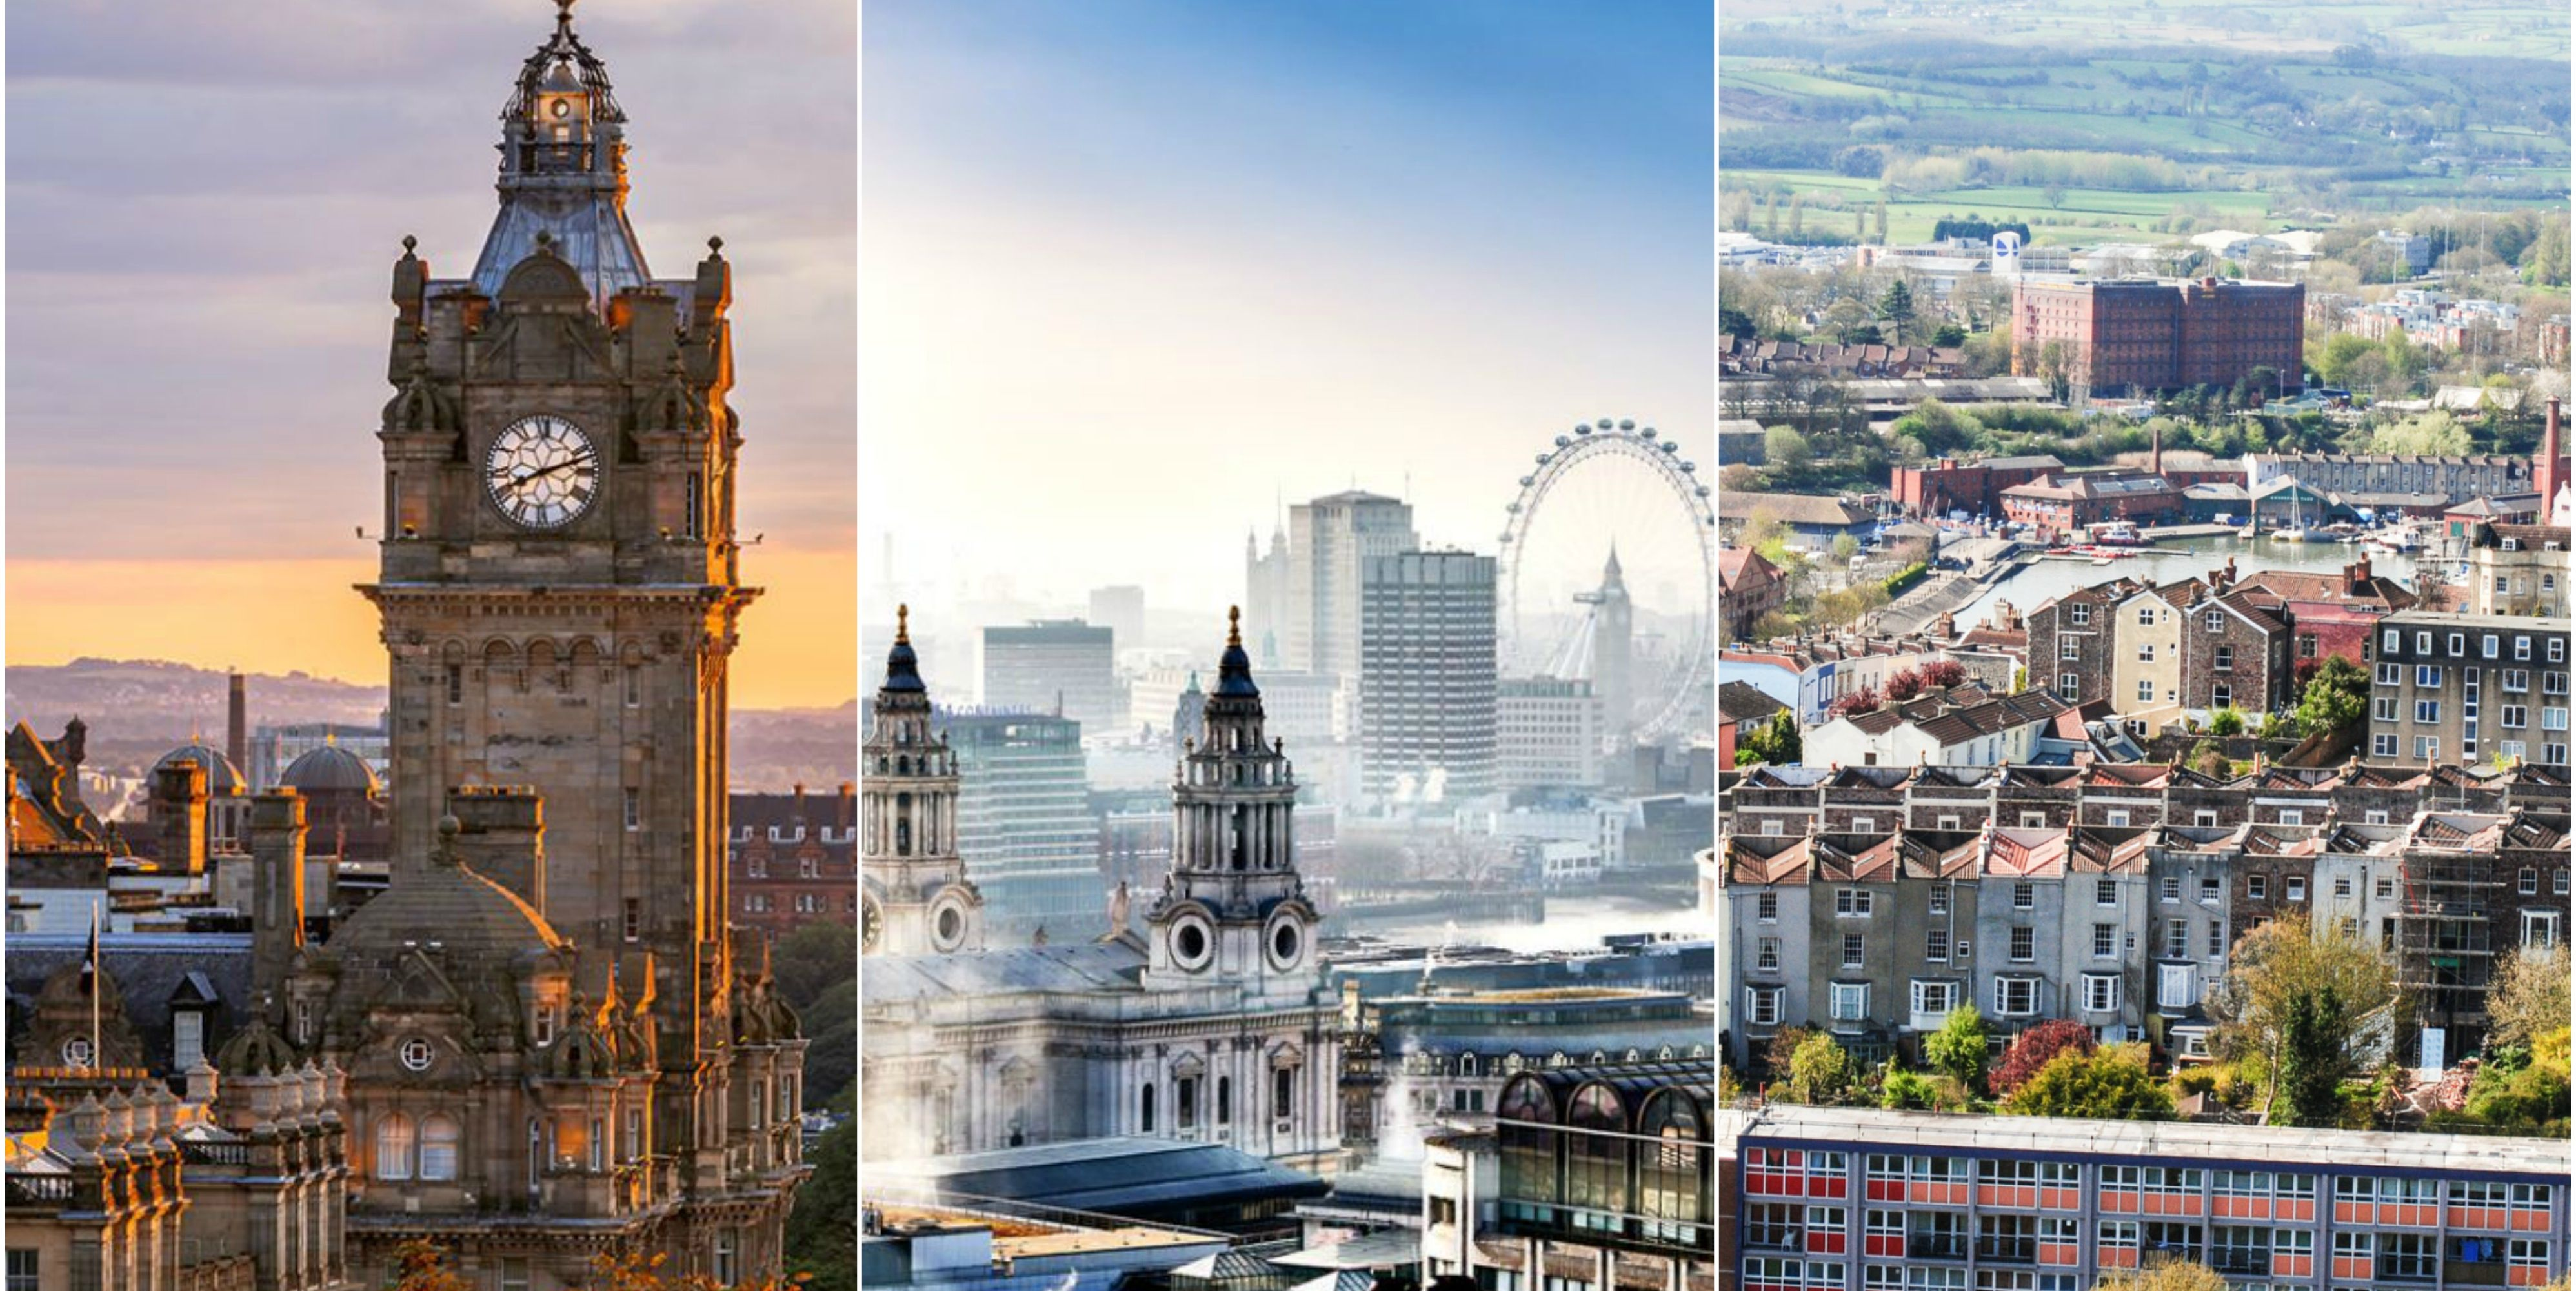 UK cities - Edinburgh, London, Bristol